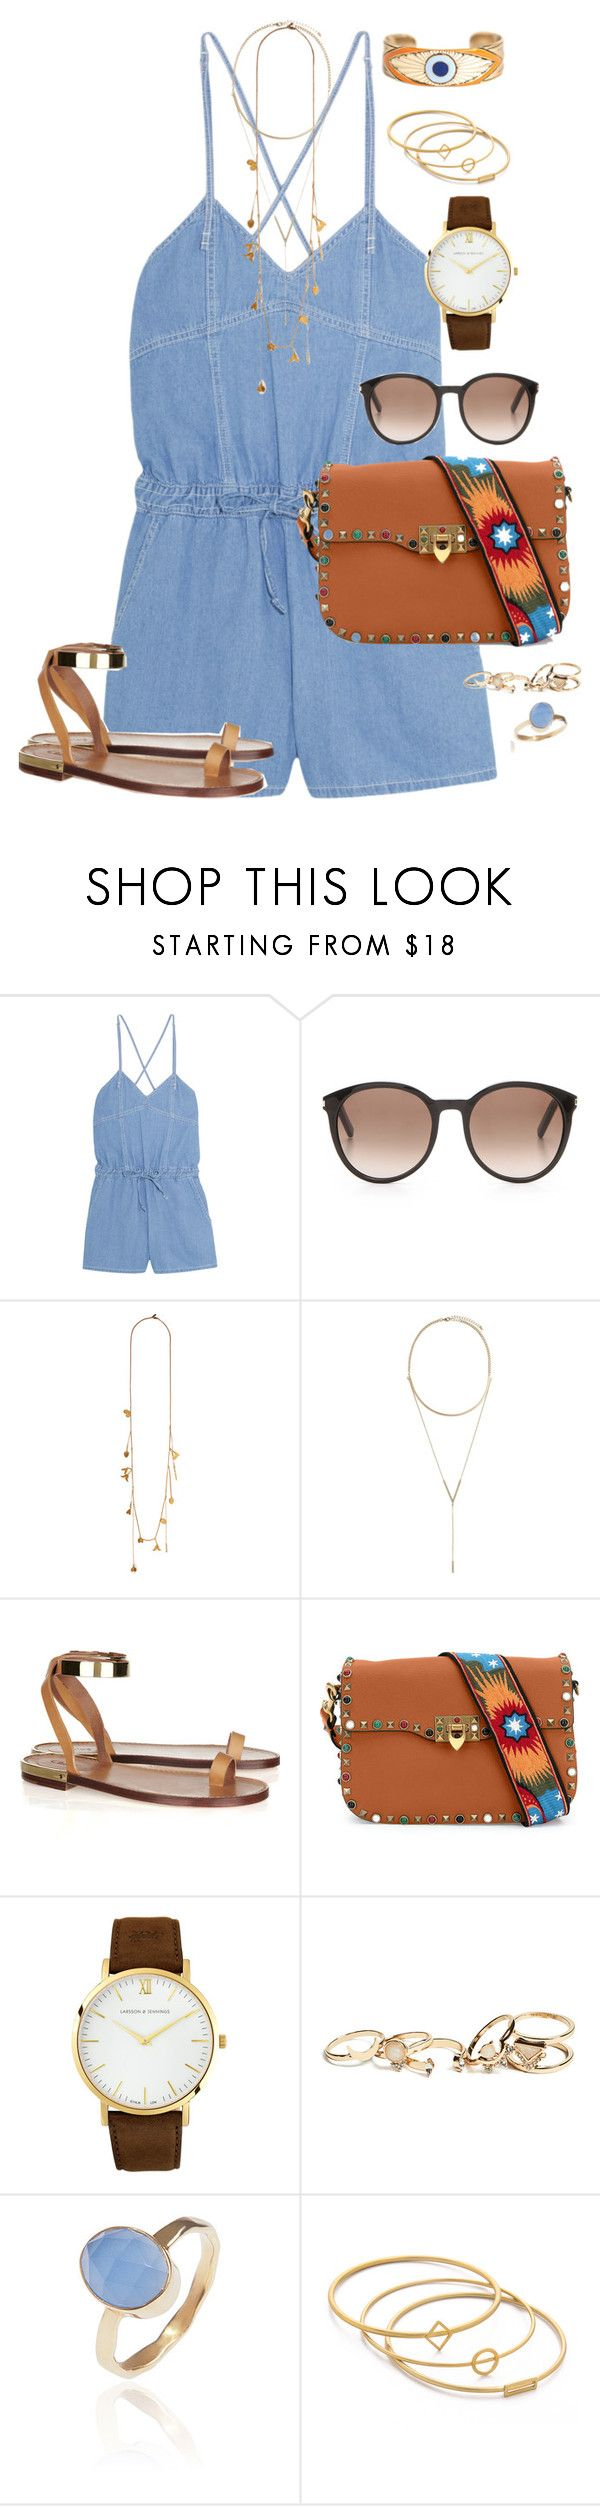 """""""Coffee Talk"""" by hrebecca73 ❤ liked on Polyvore featuring Steve J & Yoni P, Yves Saint Laurent, Chloé, BCBGeneration, Valentino, Larsson & Jennings, GUESS, Latelita, Madewell and Dream Collective"""